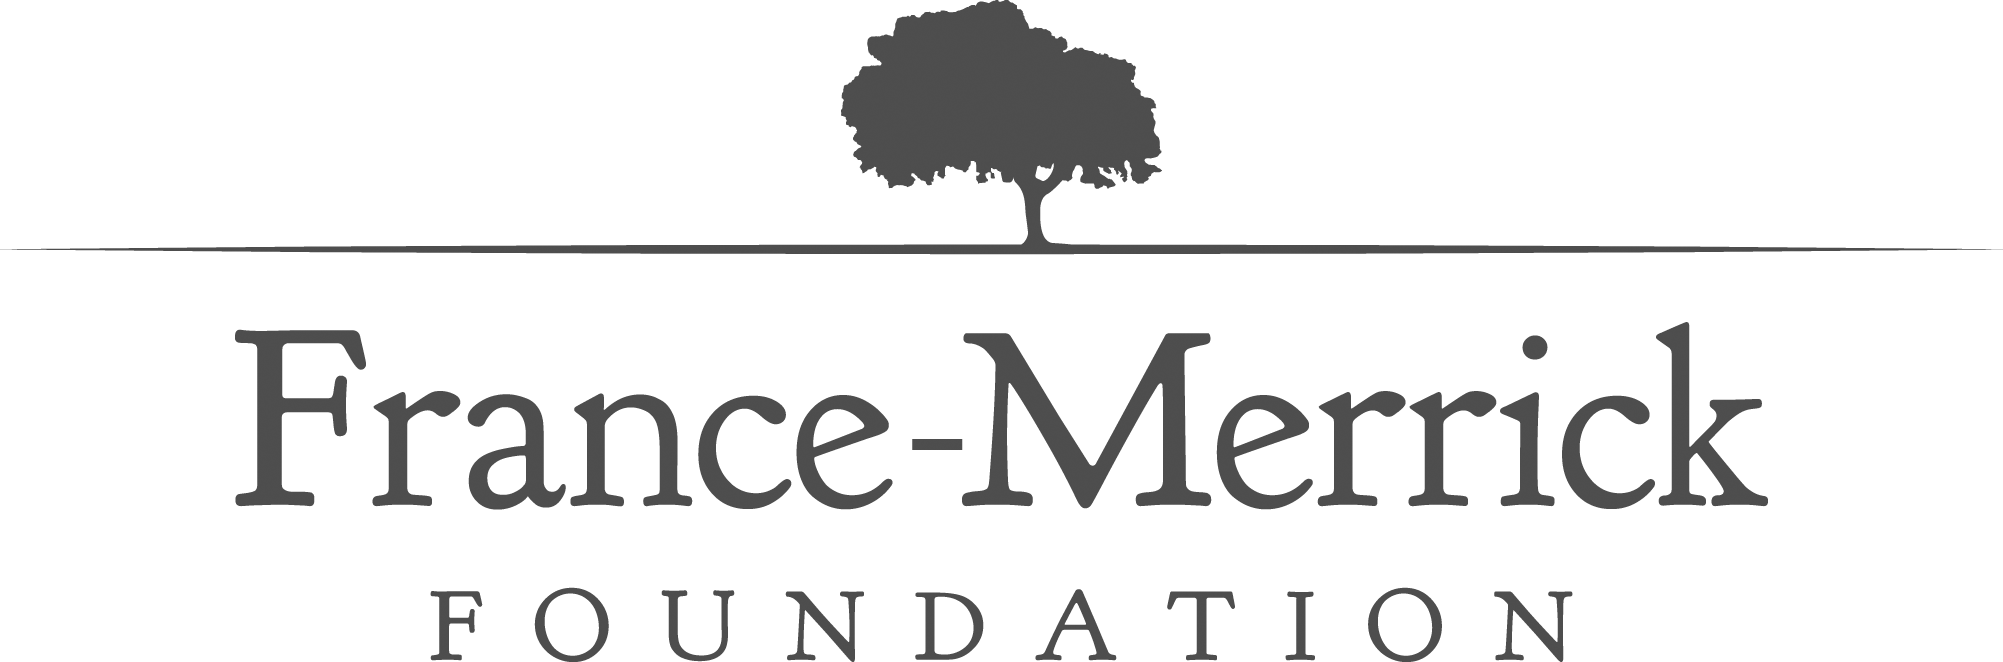 France Merrick Foundation